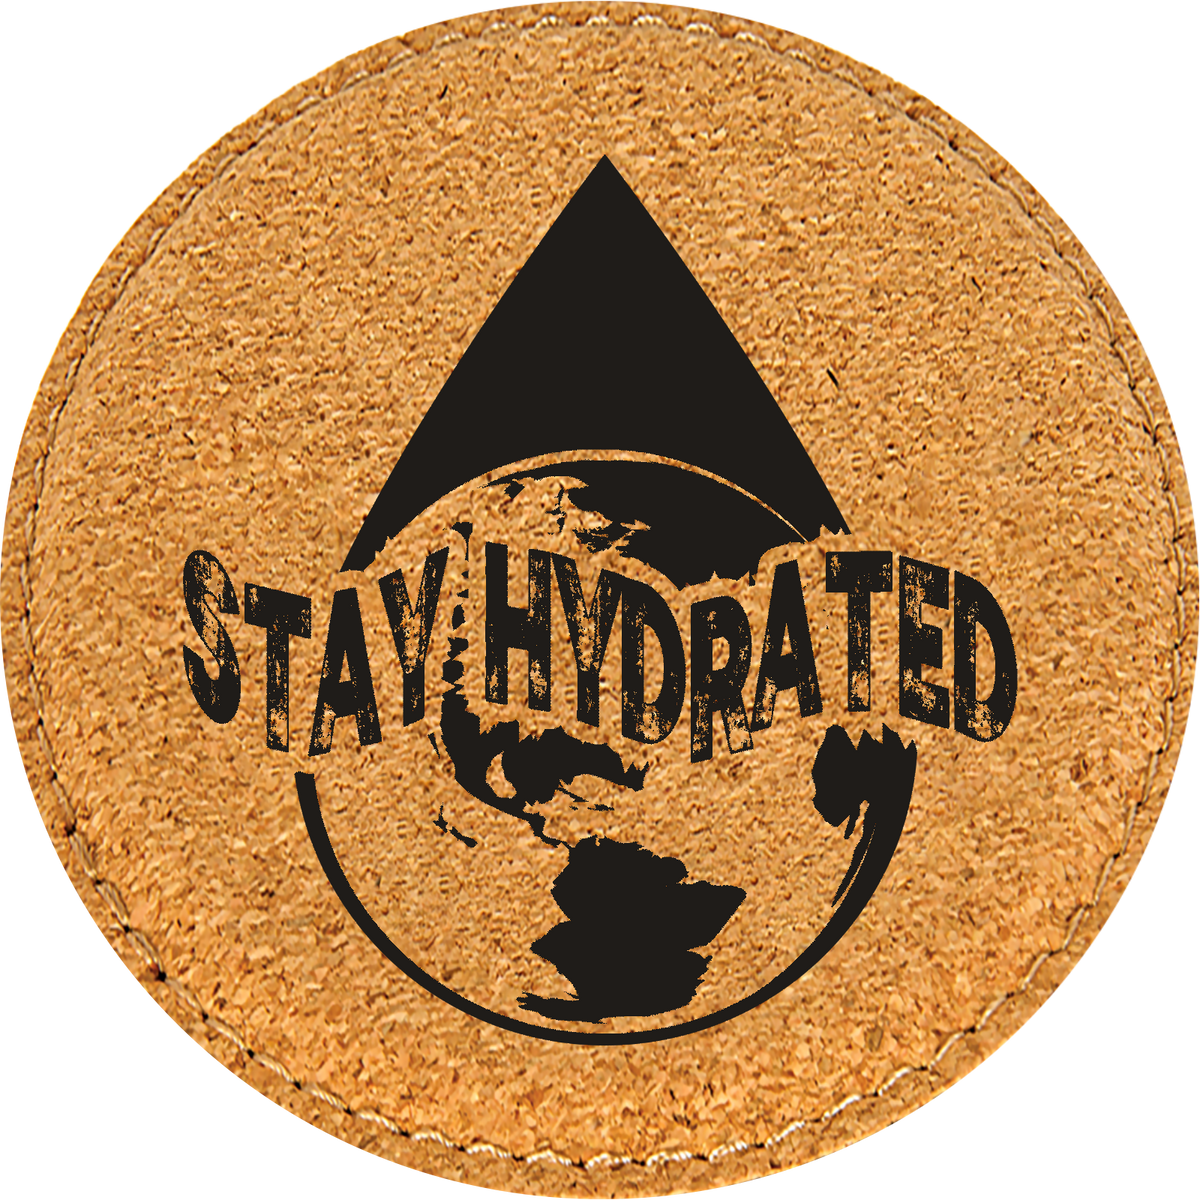 Stay Hydrated - Leatherette Round Coasters (Set of 6)